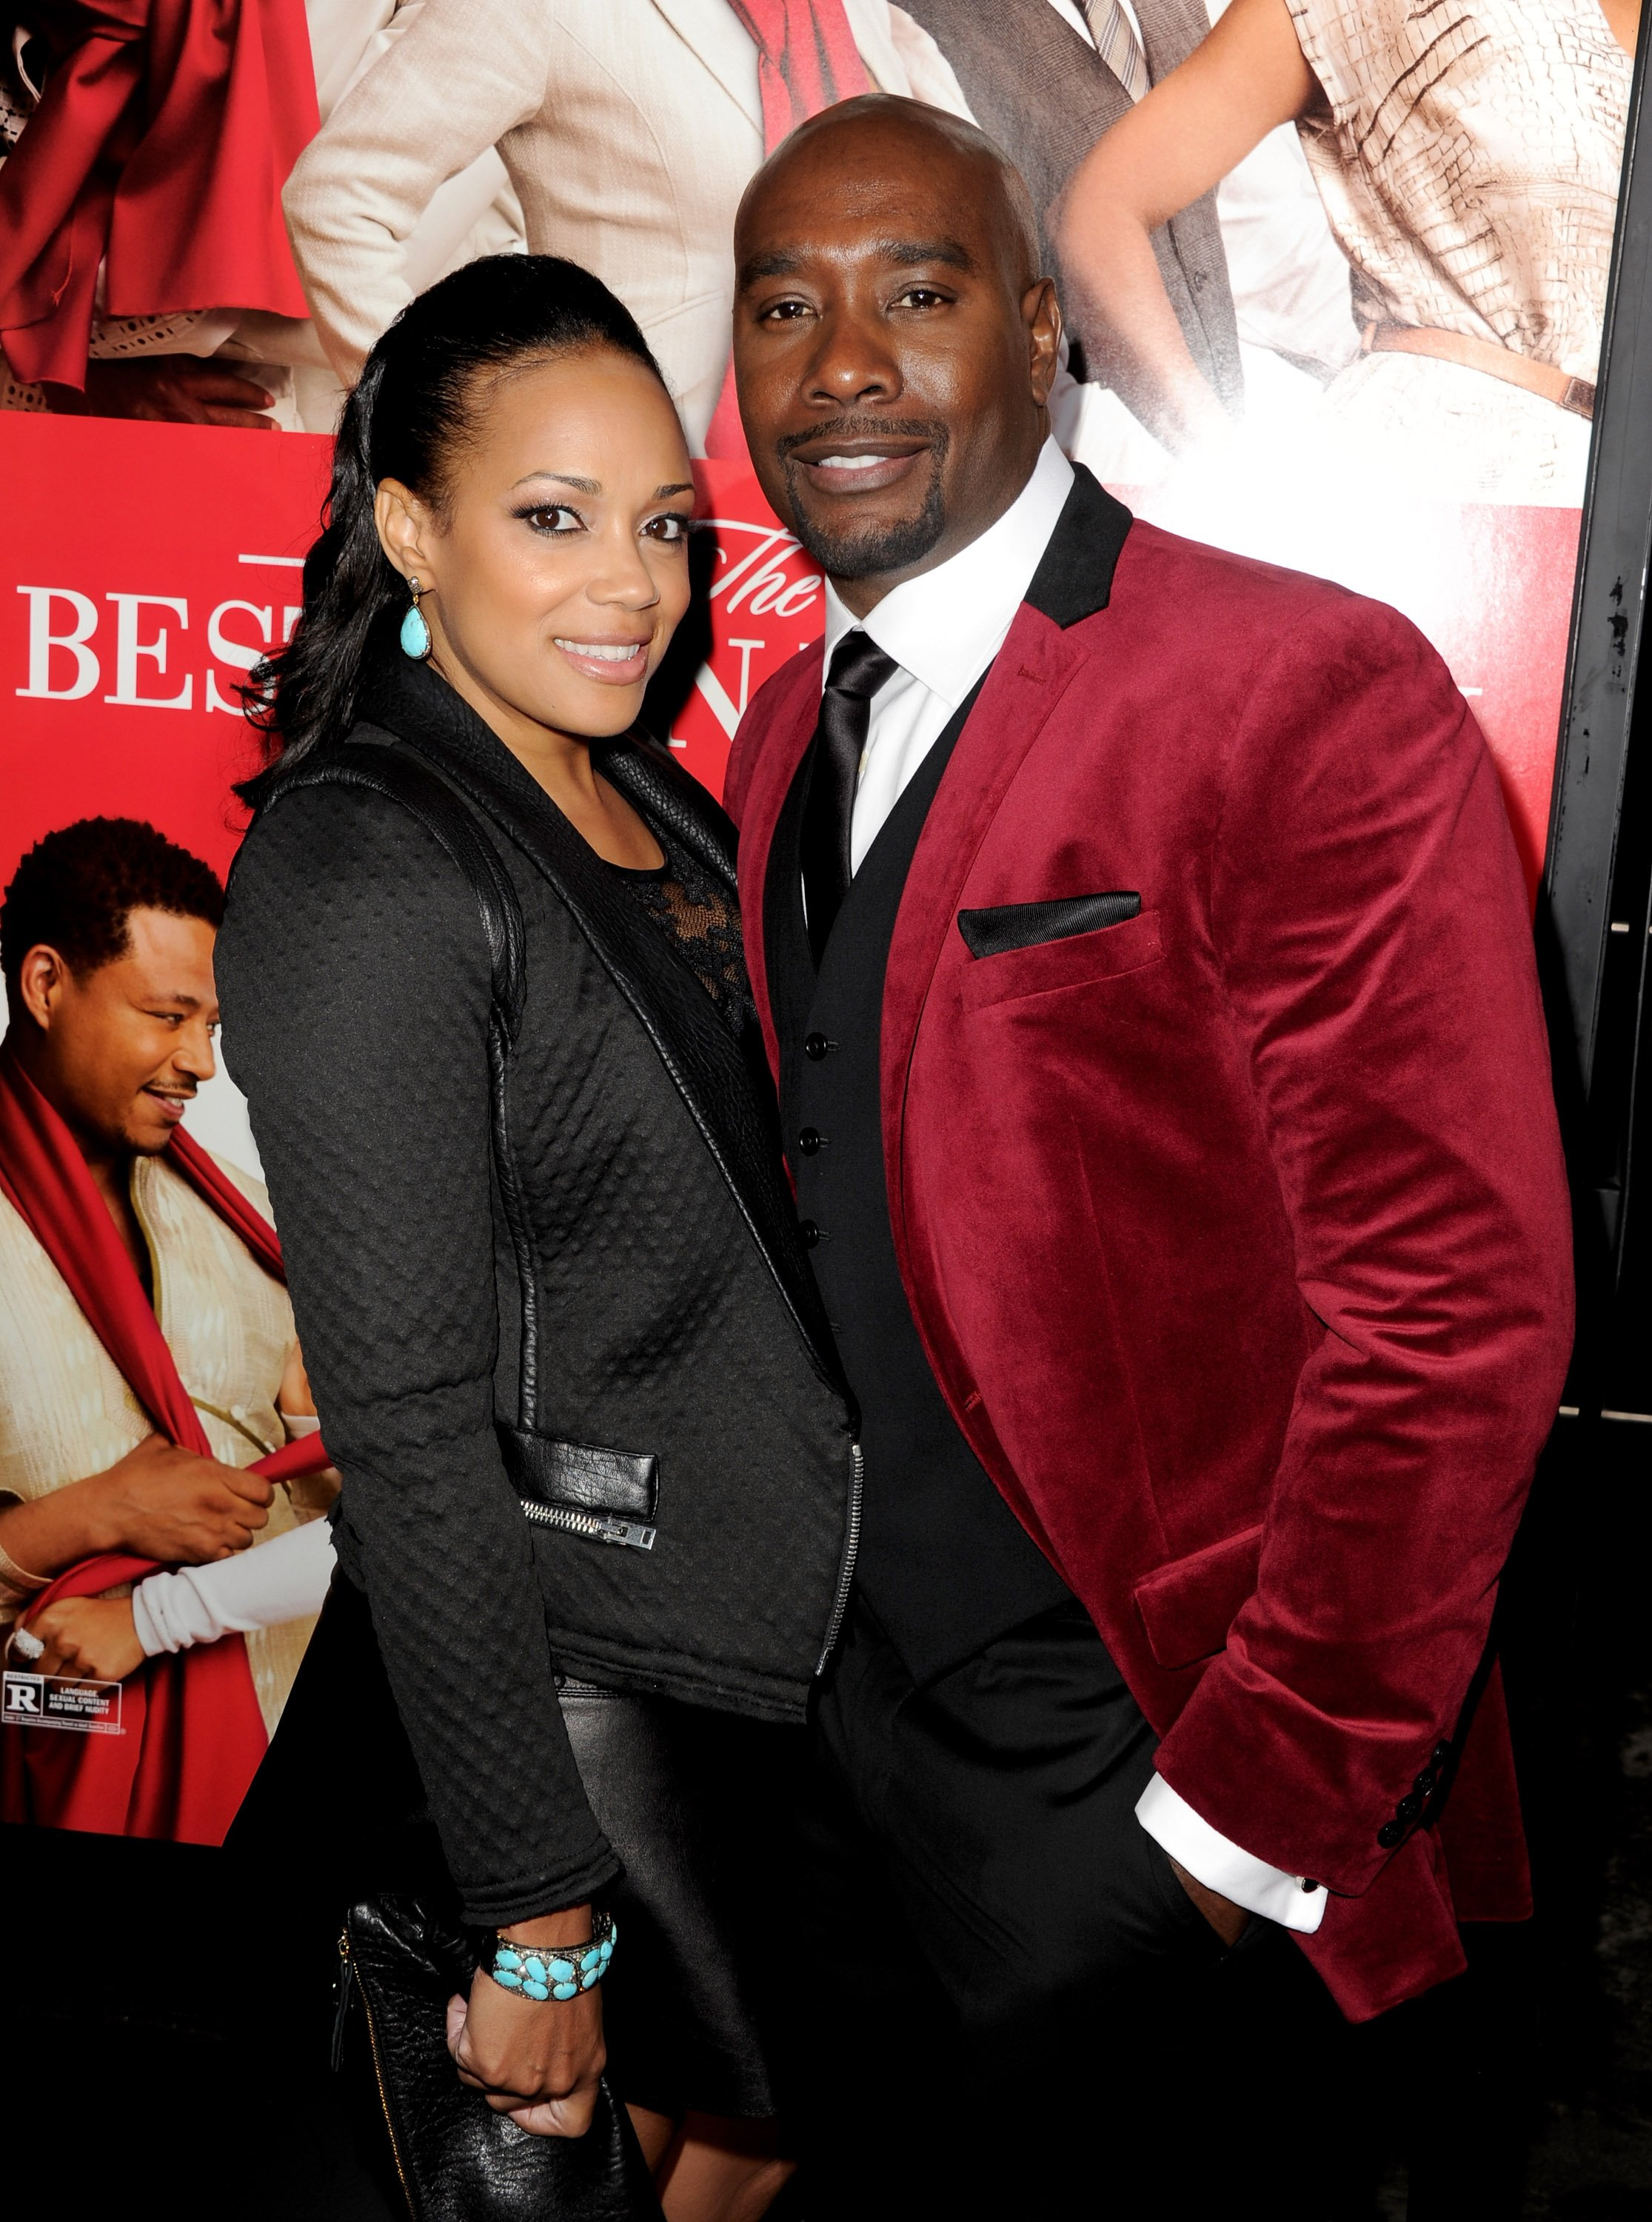 Morris Chestnut and his wife Pam on November 5, 2013 in Los Angeles, California   Source: Getty Images